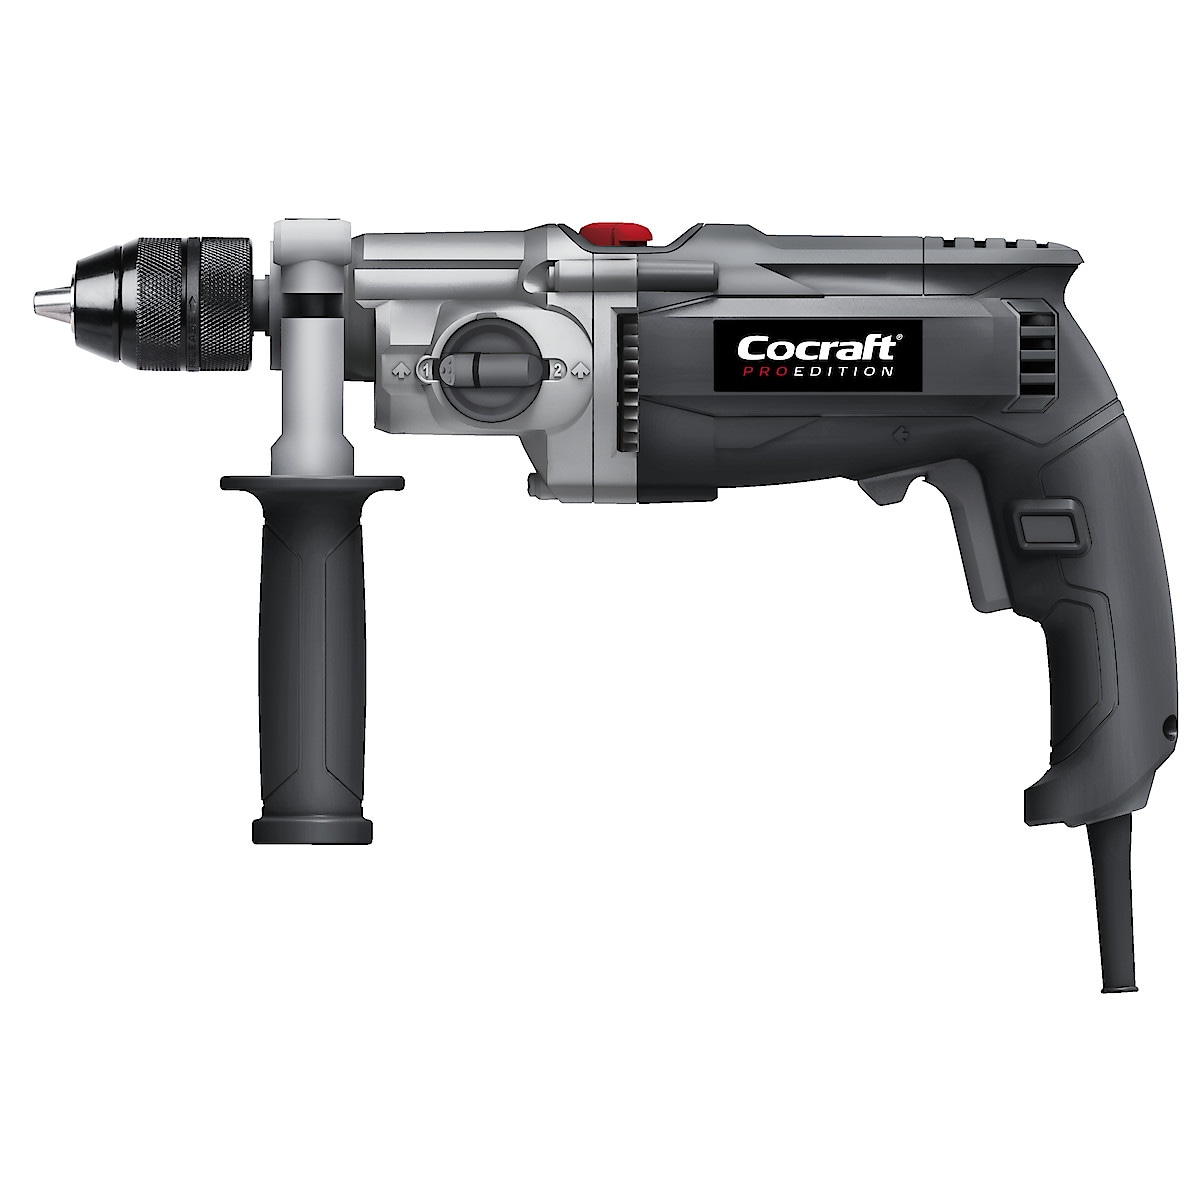 Cocraft PRO Edition IT1050-M slagdrill